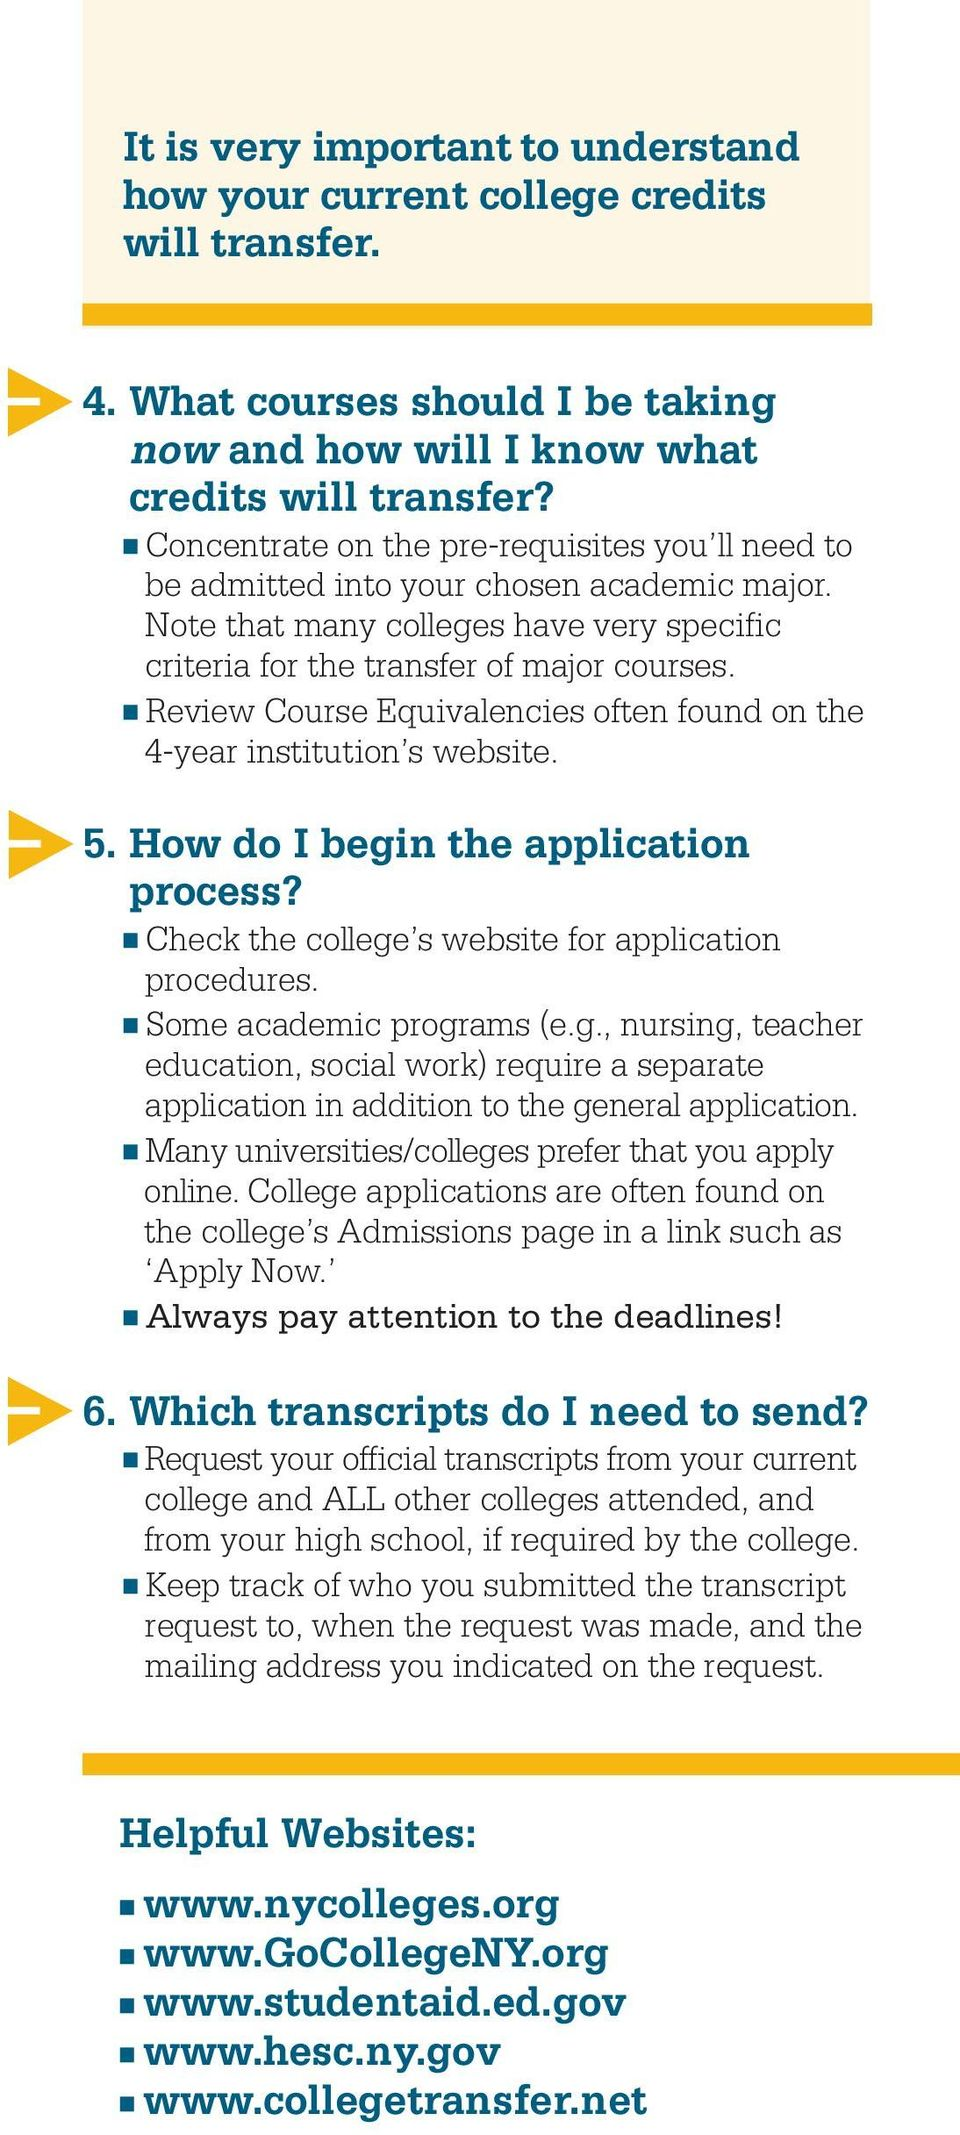 Review Course Equivalencies often found on the 4-year institution s website. 5. How do I begin the application process? Check the college s website for application procedures.